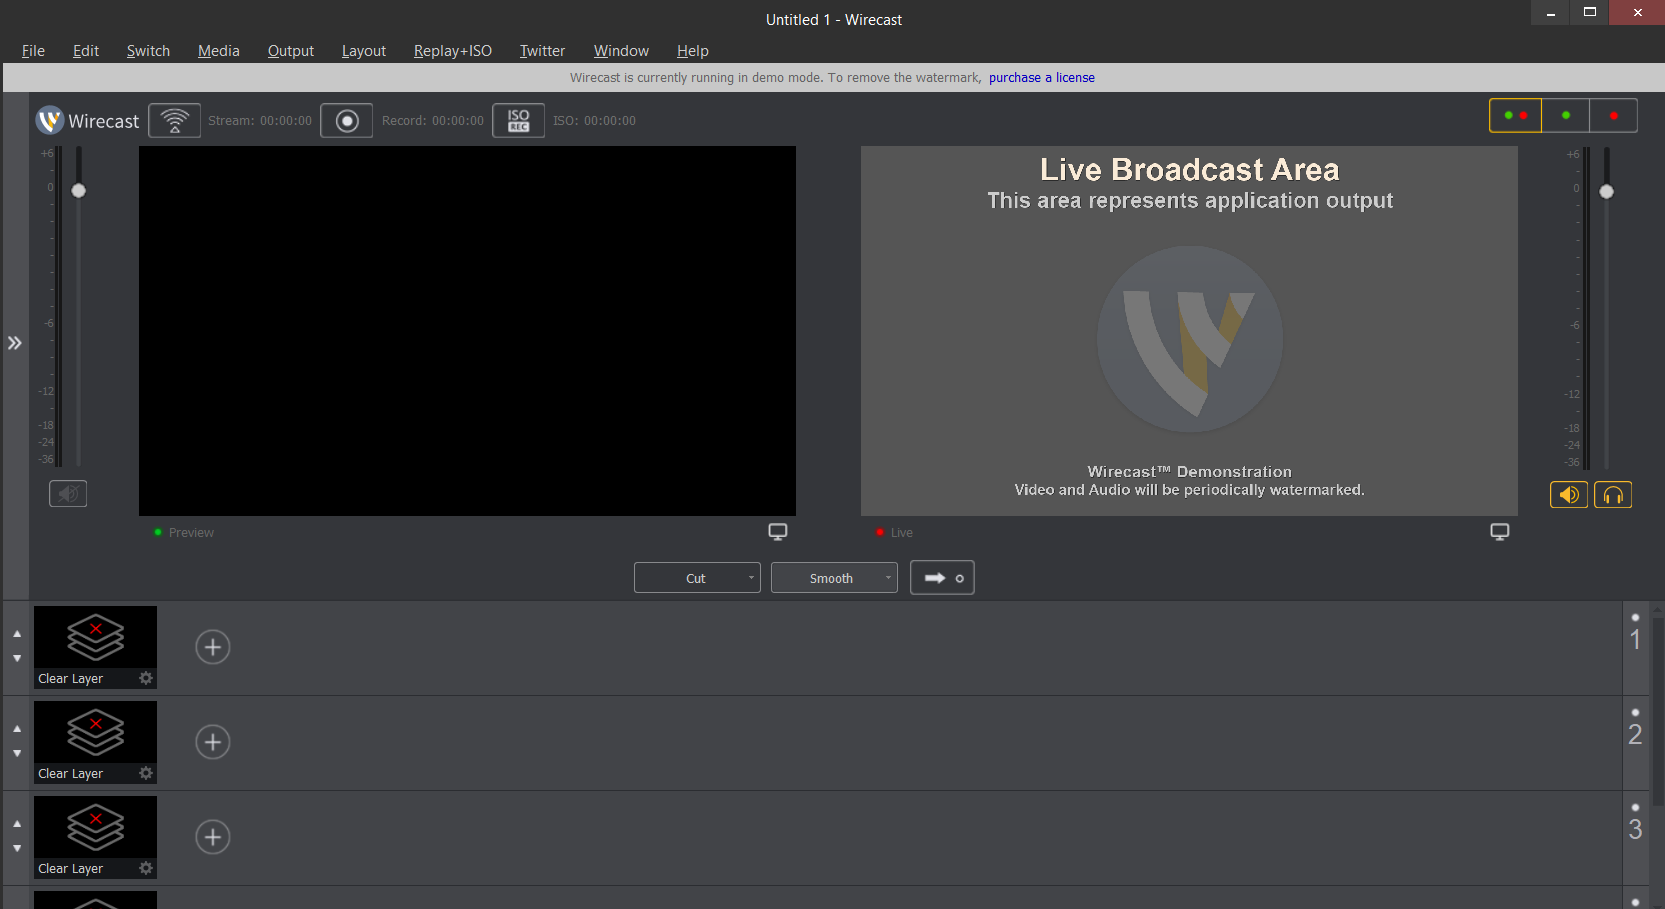 Image of the Wirecast start interface